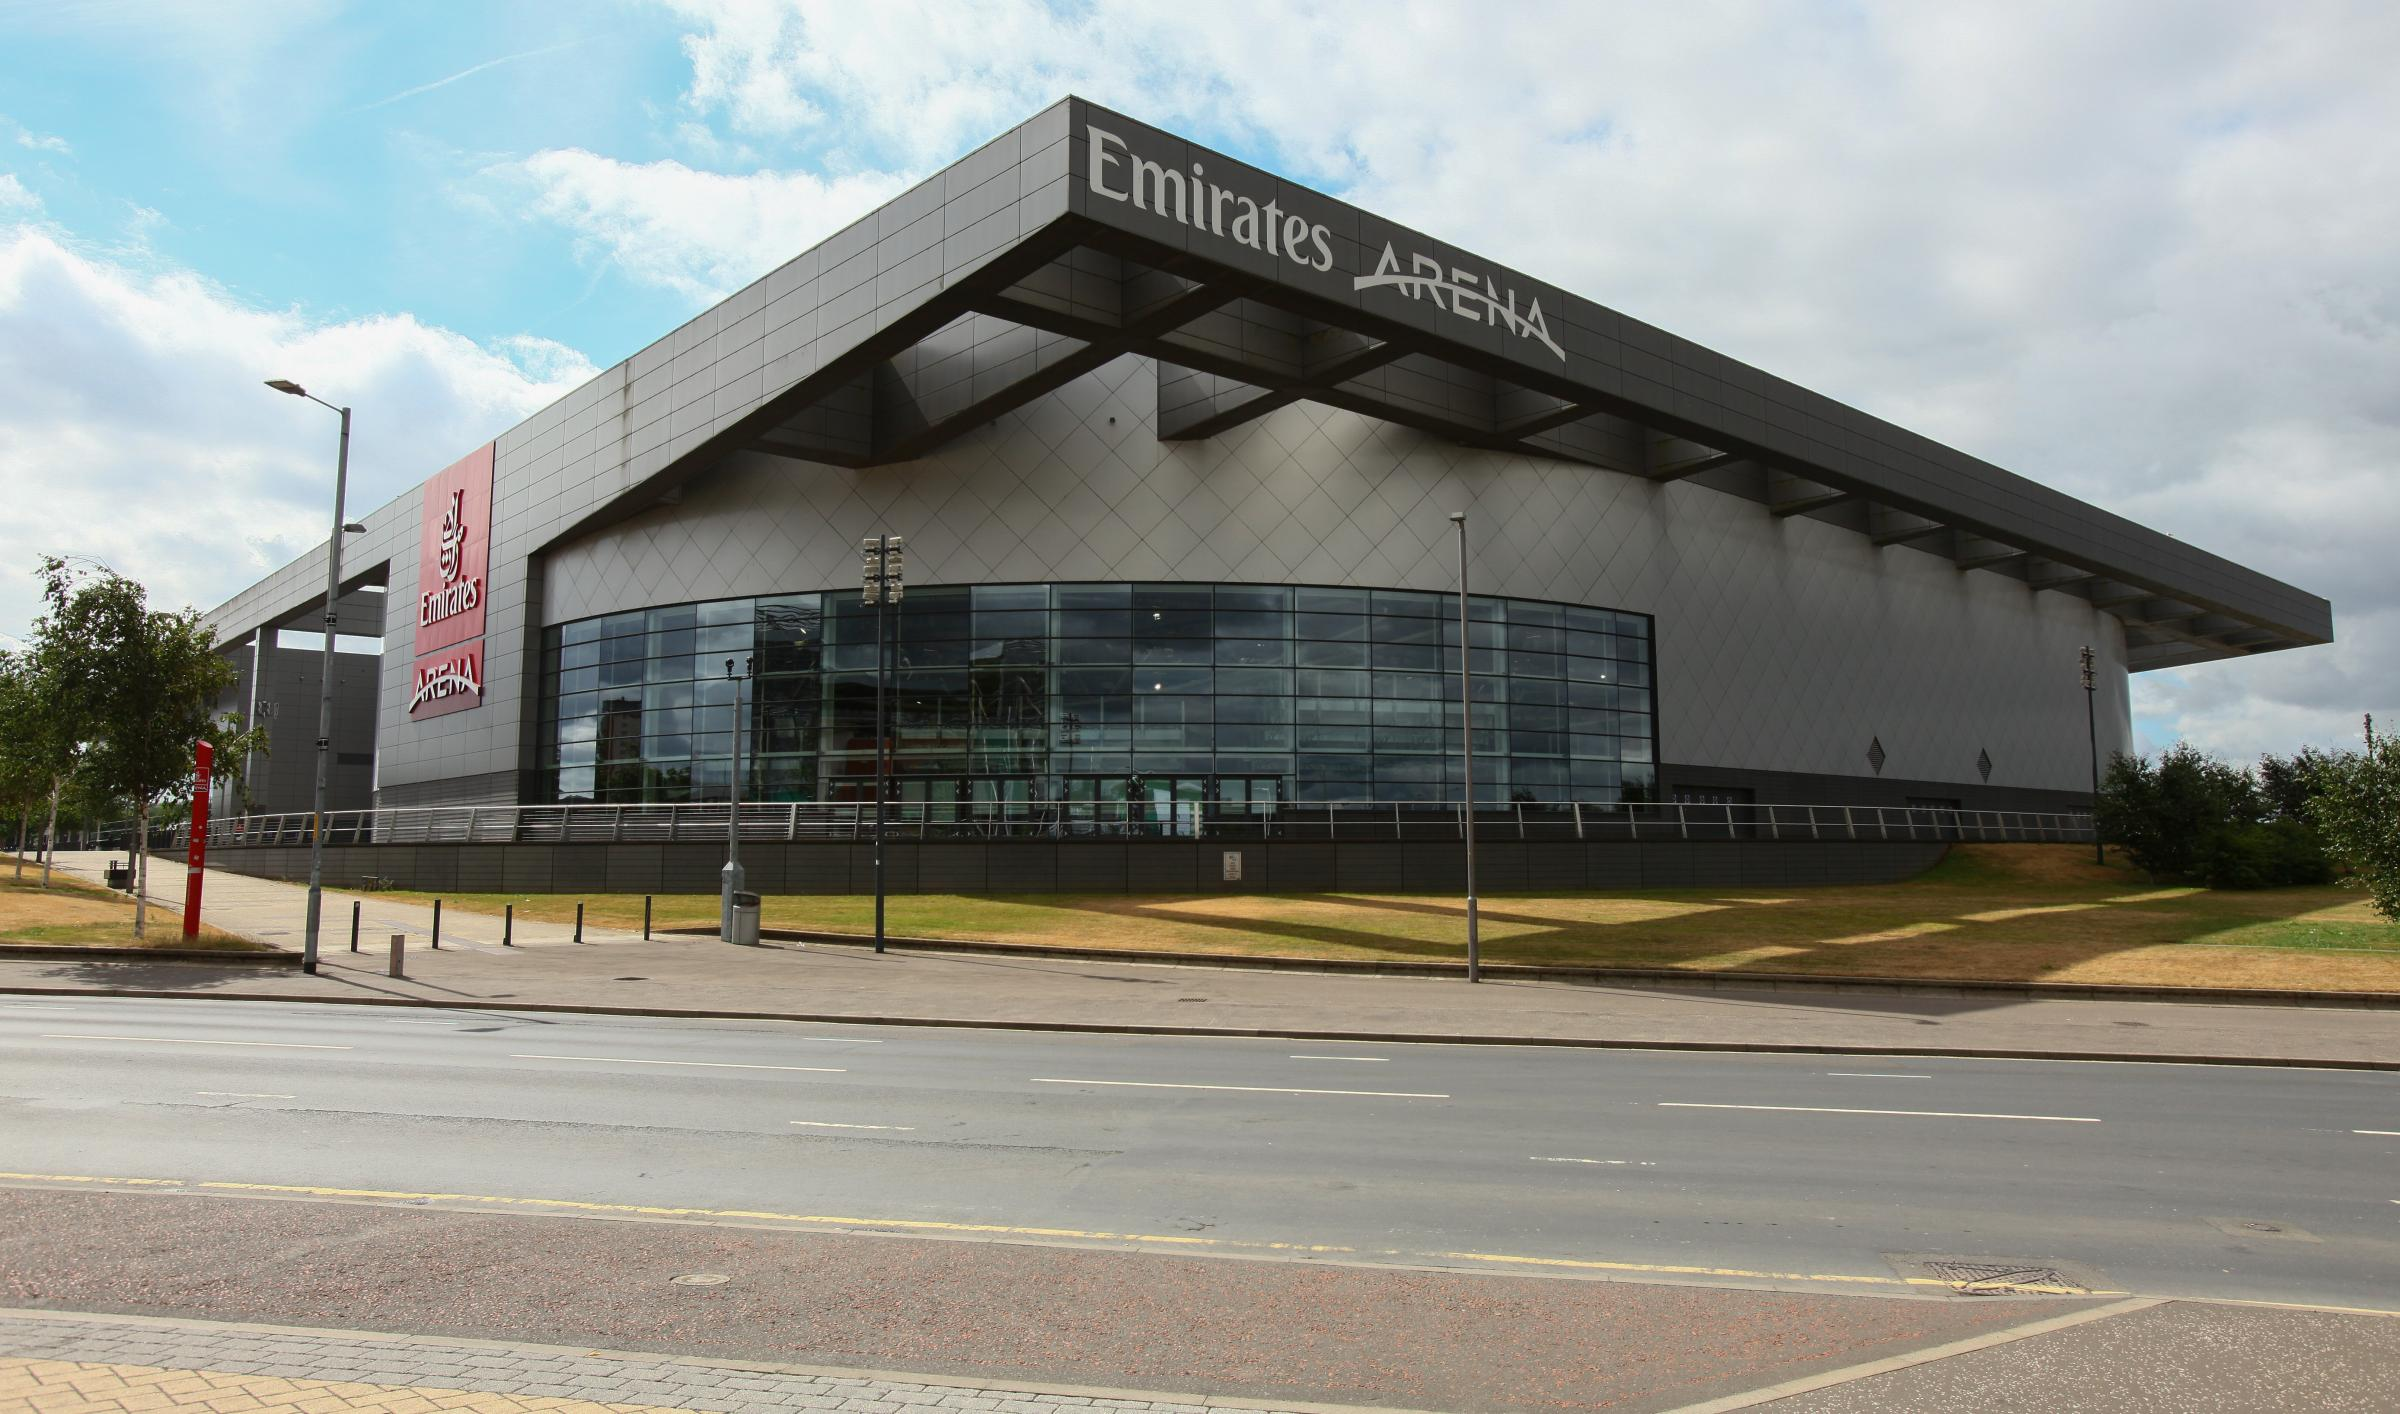 The Emirates Arena is one of the centres affected